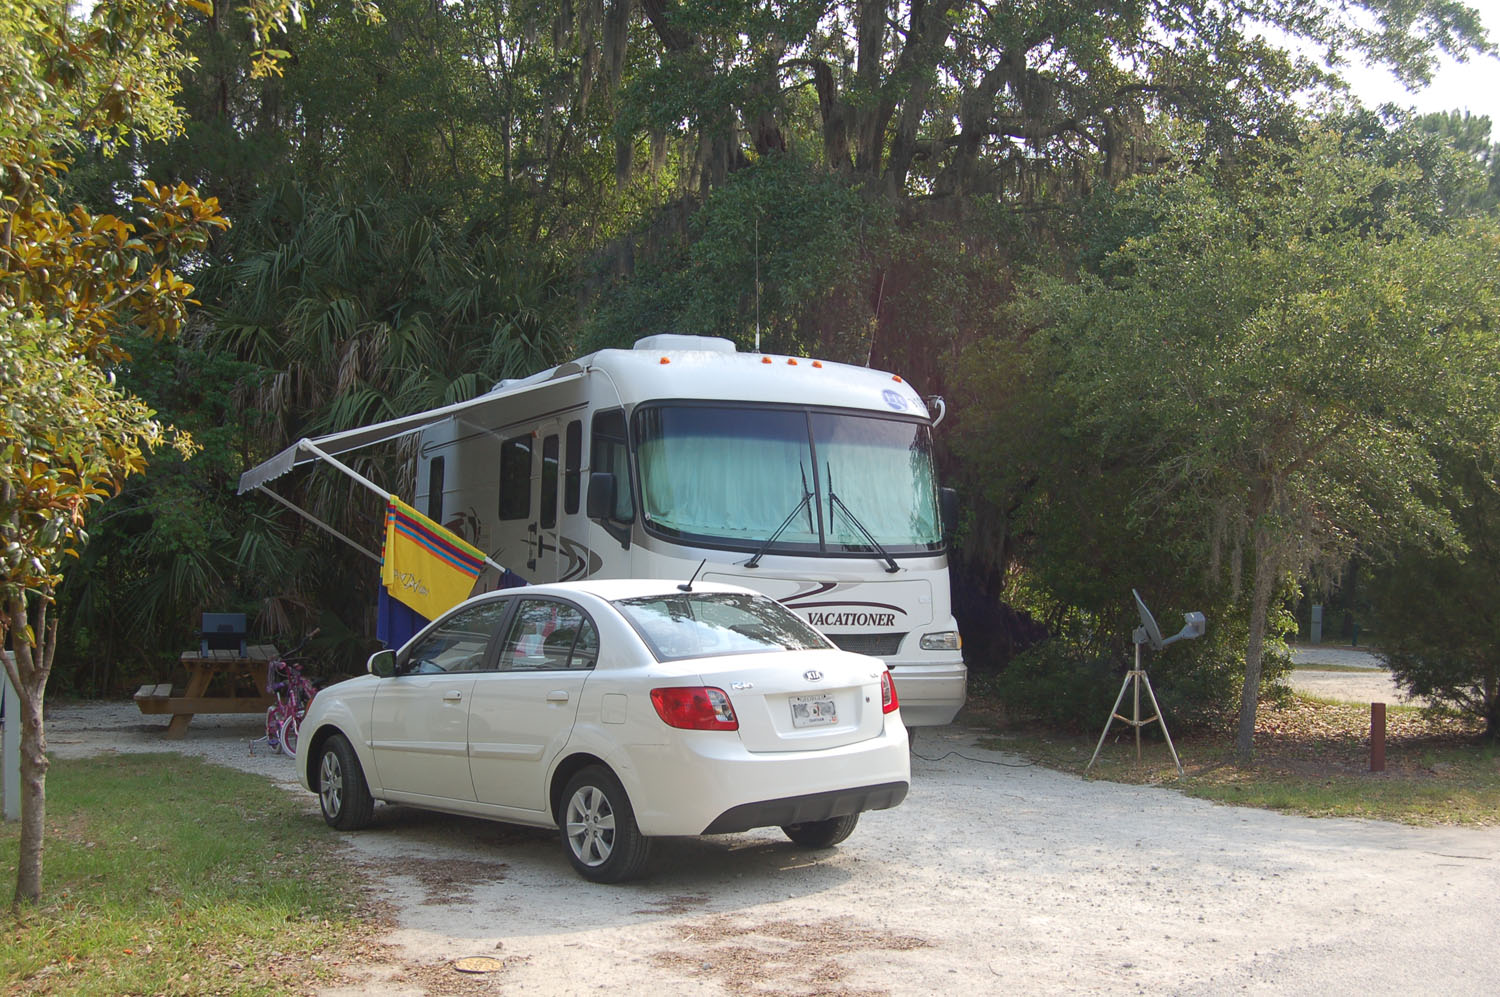 Image of campsite #13 at James Island County Park